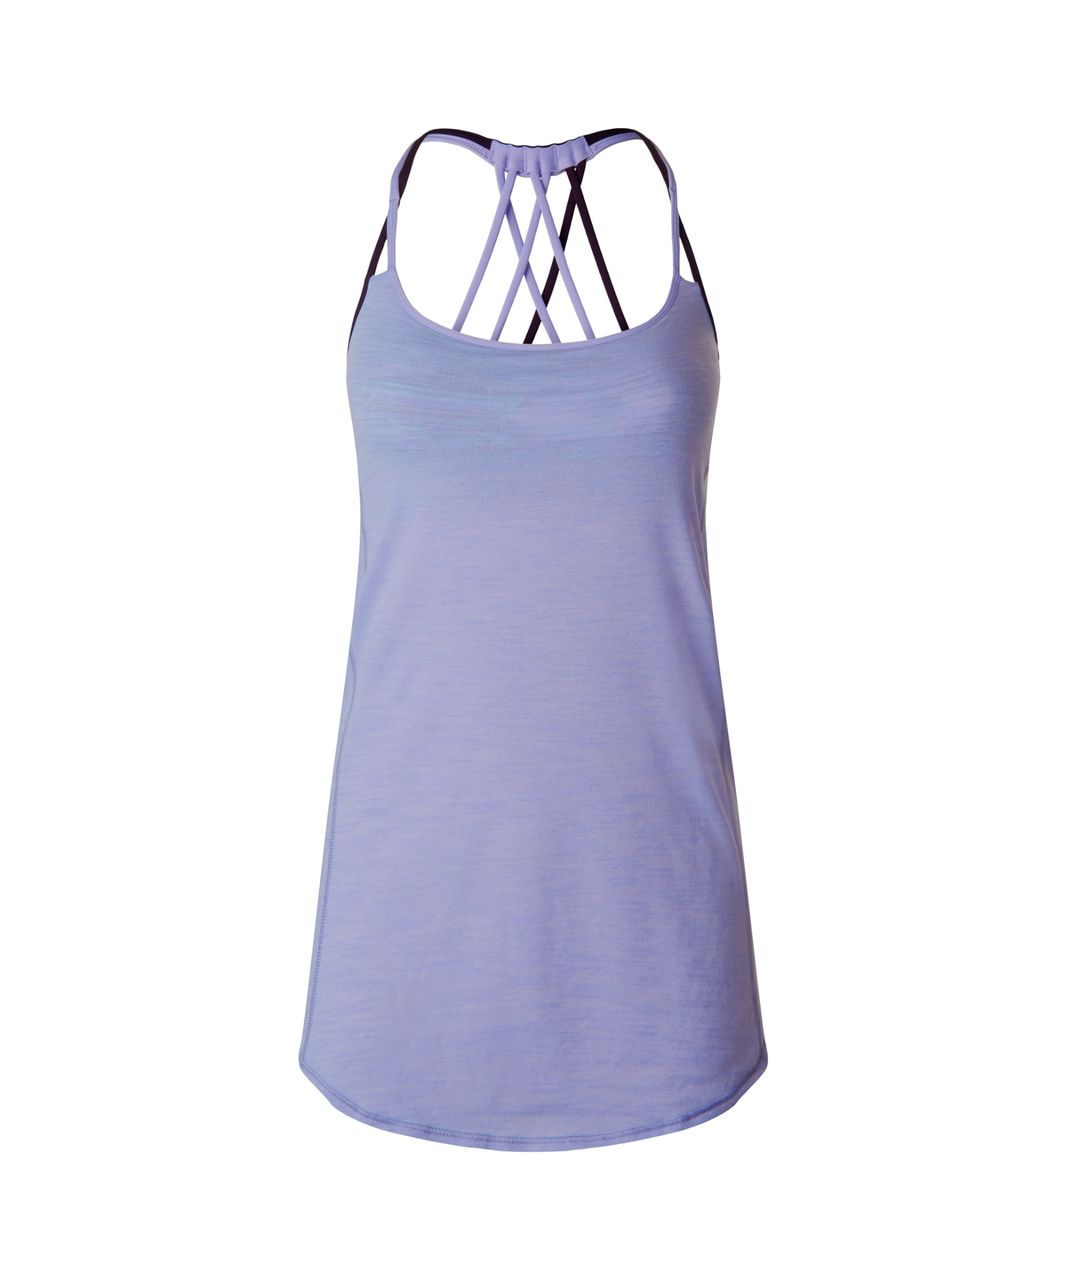 Lululemon Lighten Up Tank - Heathered Lilac / Blurry Belle Multi / Deep Zinfandel